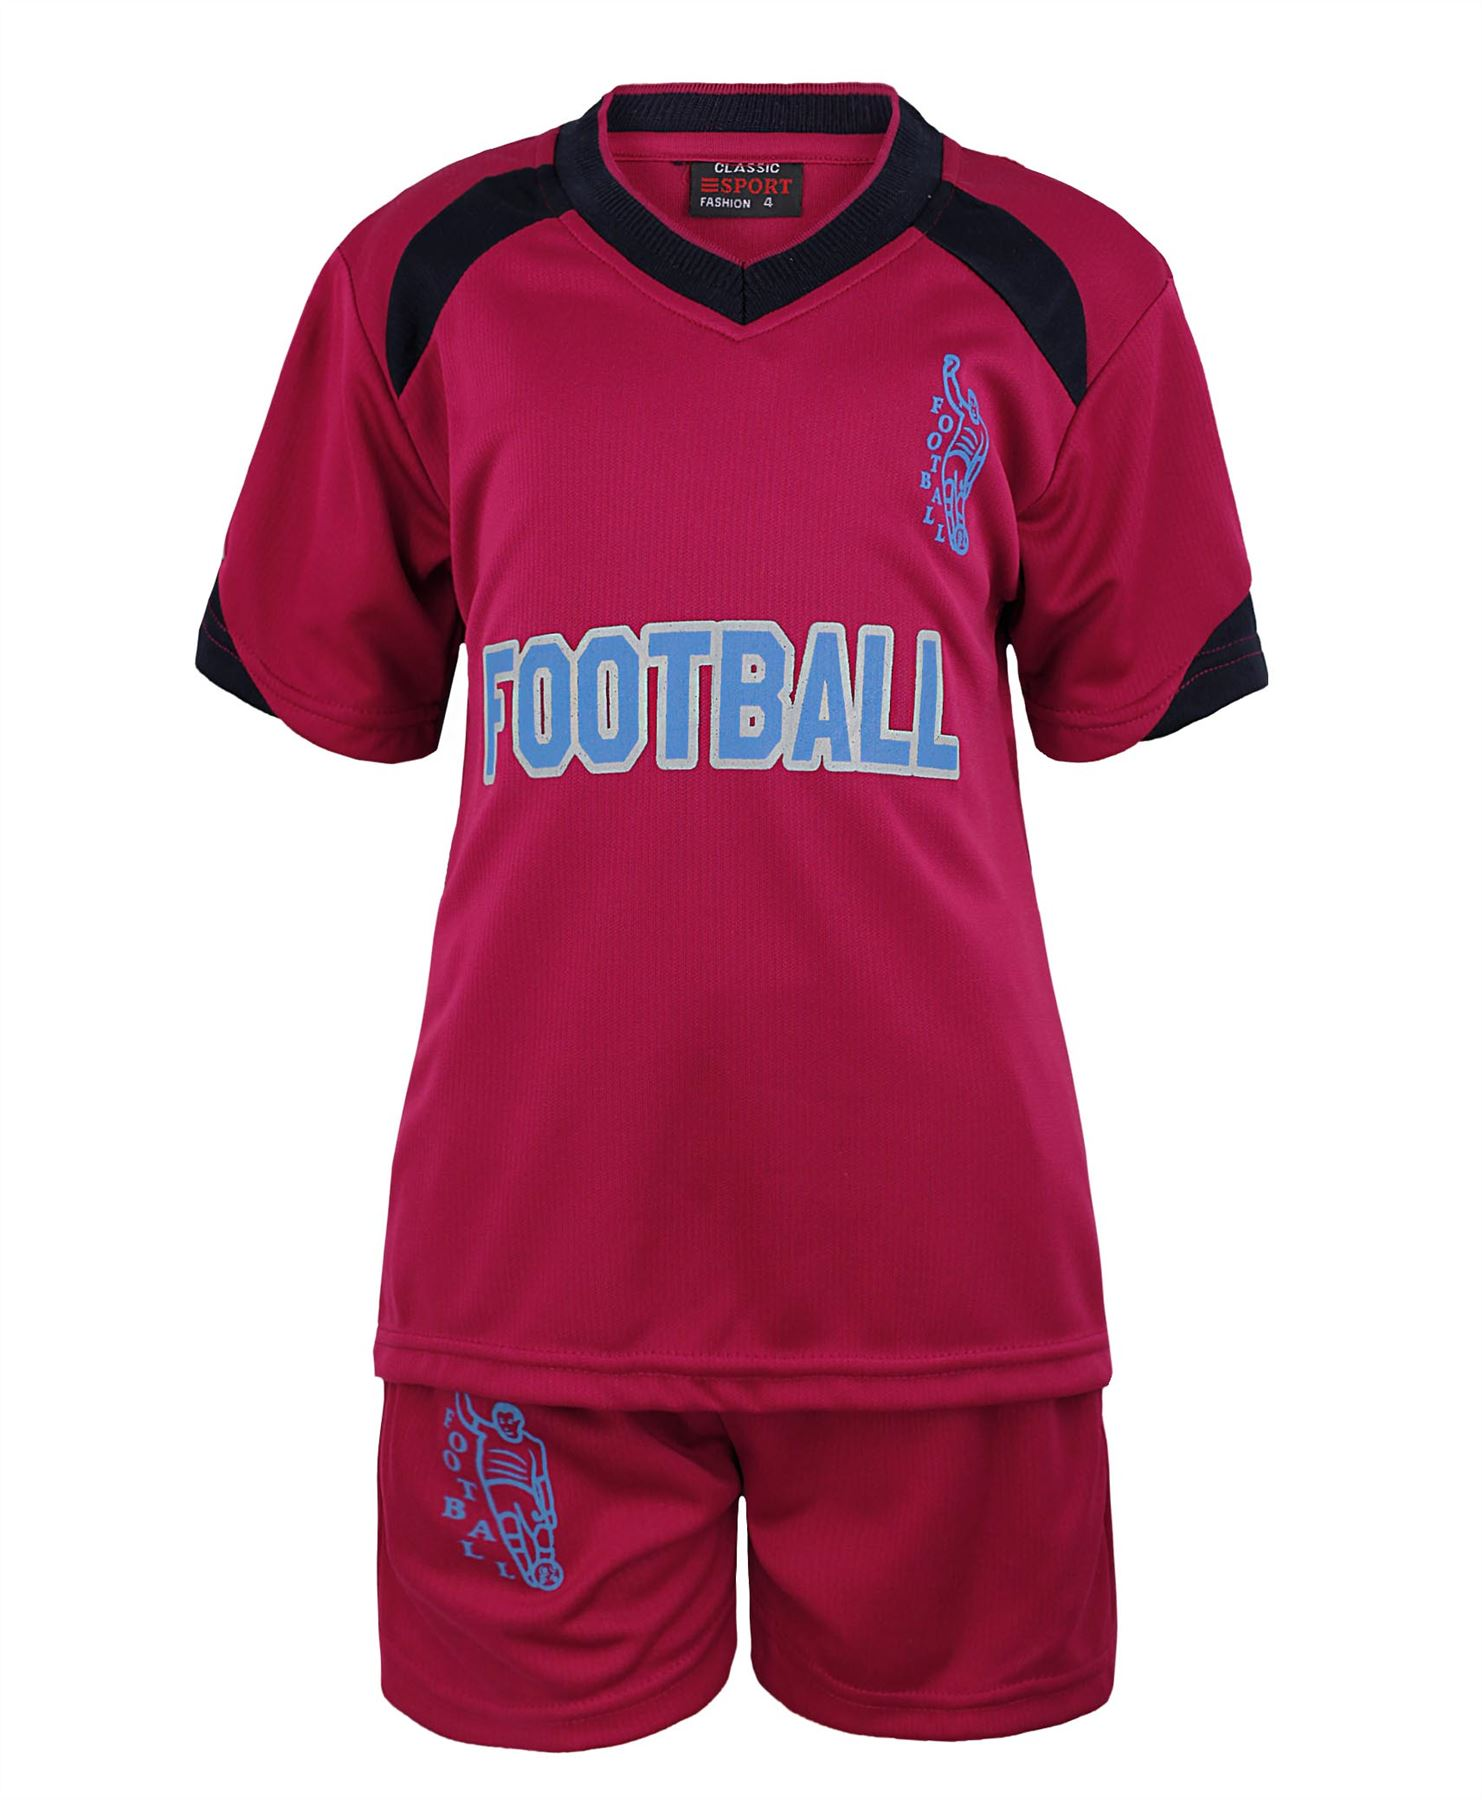 KIDS-2-PIECE-T-SHIRT-amp-SHORTS-SET-FOOTBALL-PRINT-GIRLS-BOYS-SPORTS-KIT-3-14-YEAR